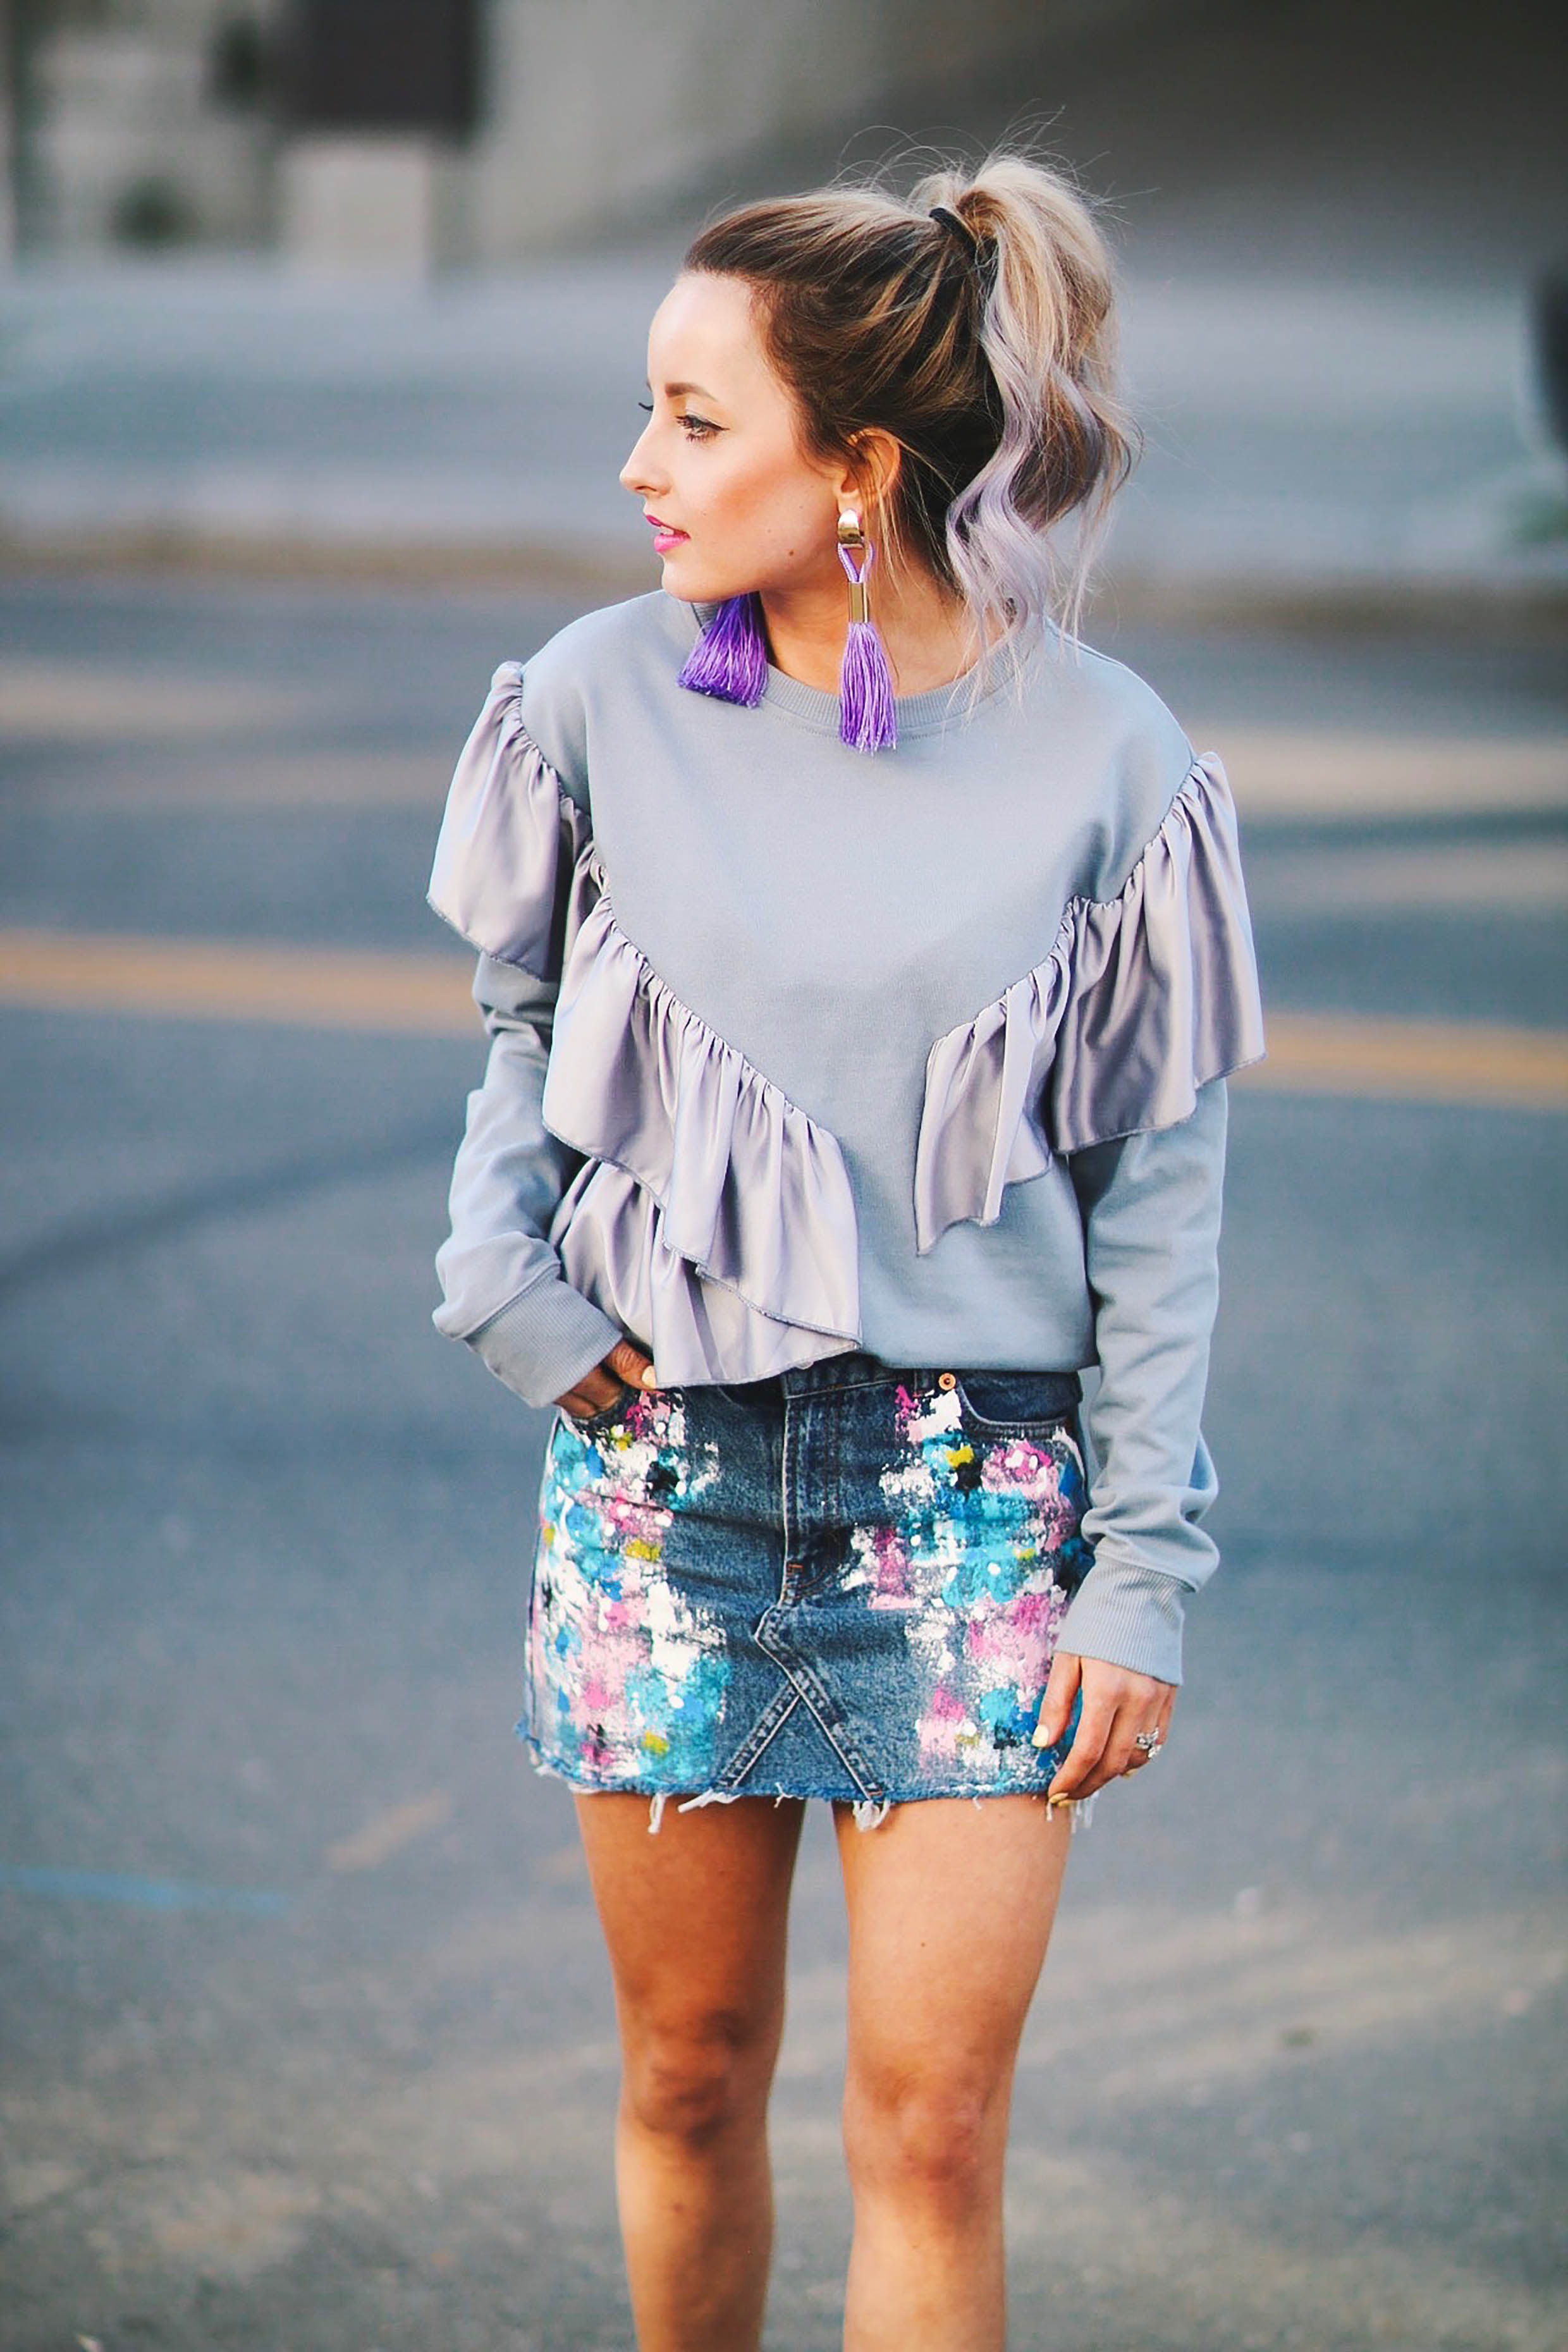 RUFFLES AND DENIM FOR SPRING